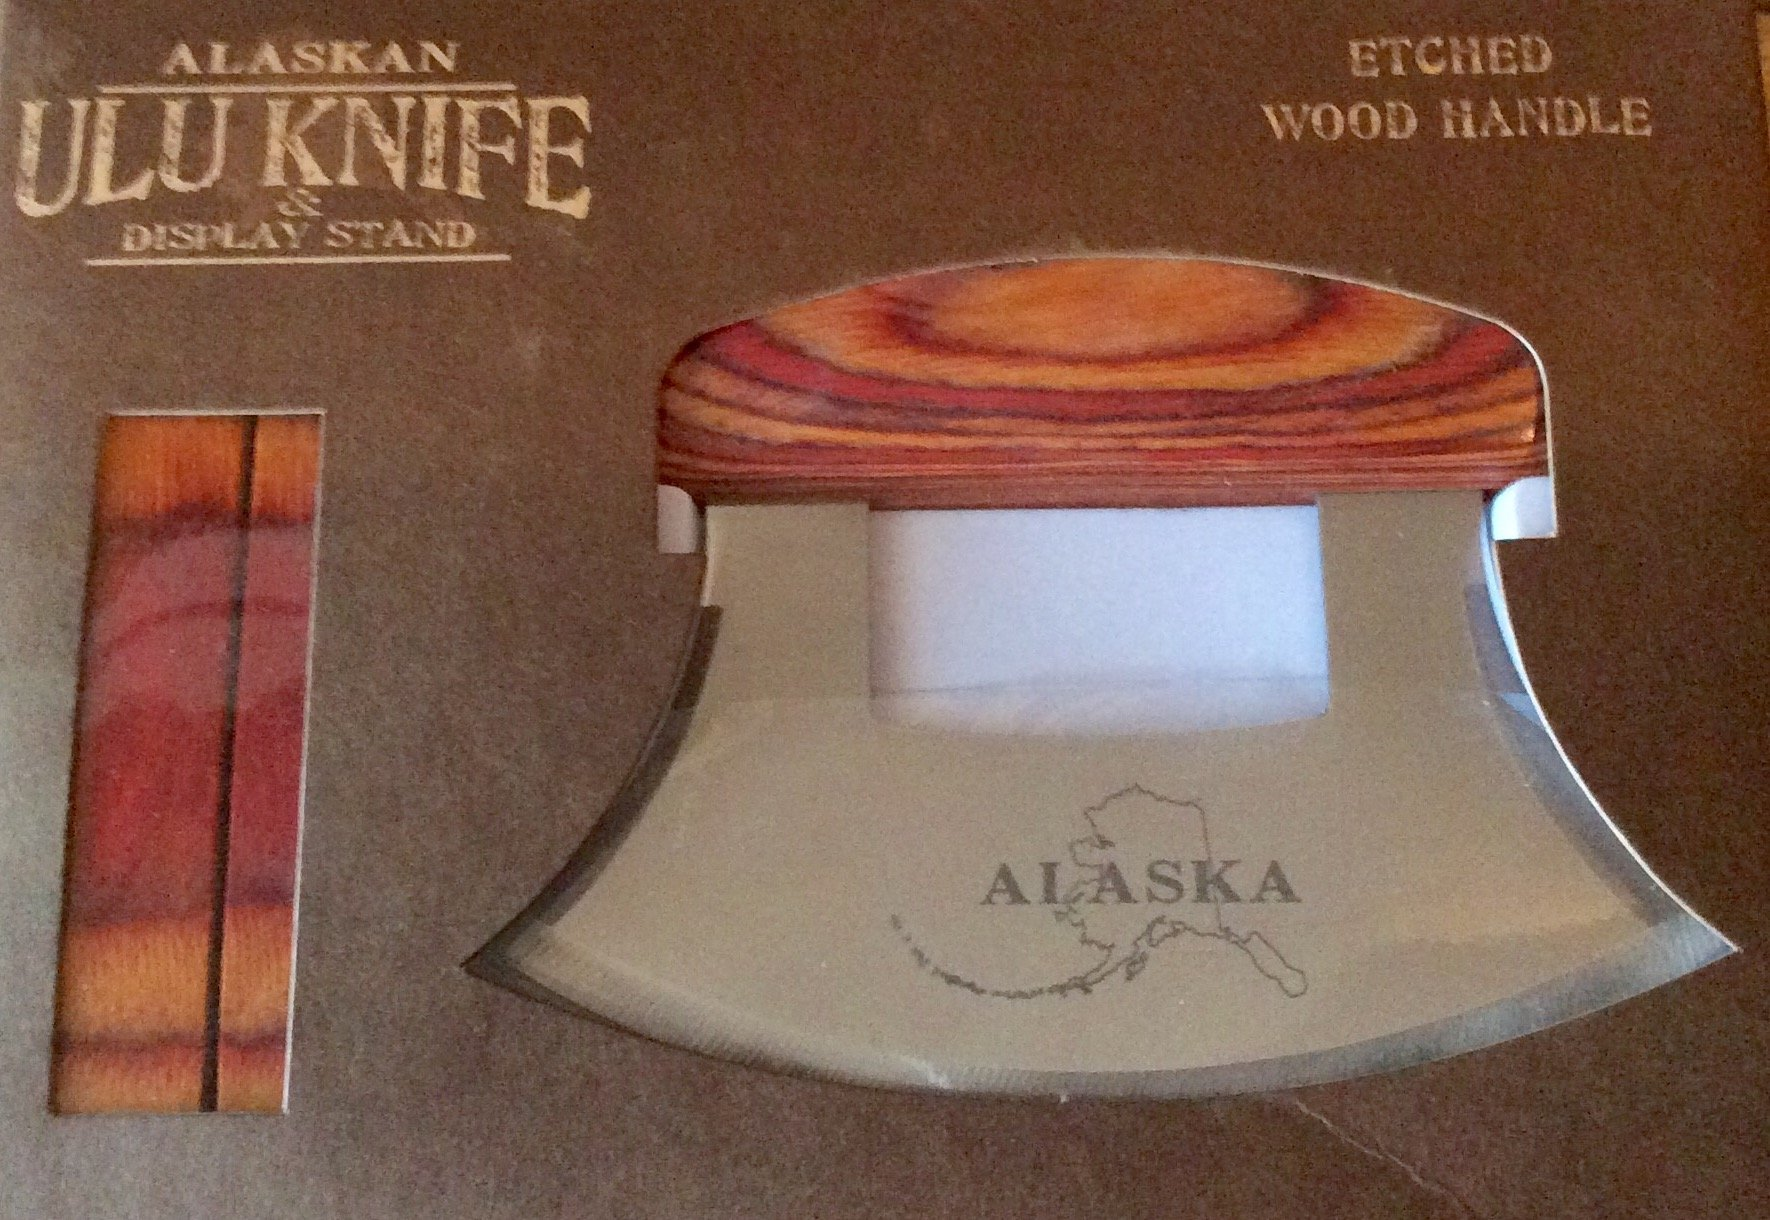 Alaska Ulu Knife Natural Exotic Wood Stand Etched Blade by Arctic Circle (Image #6)